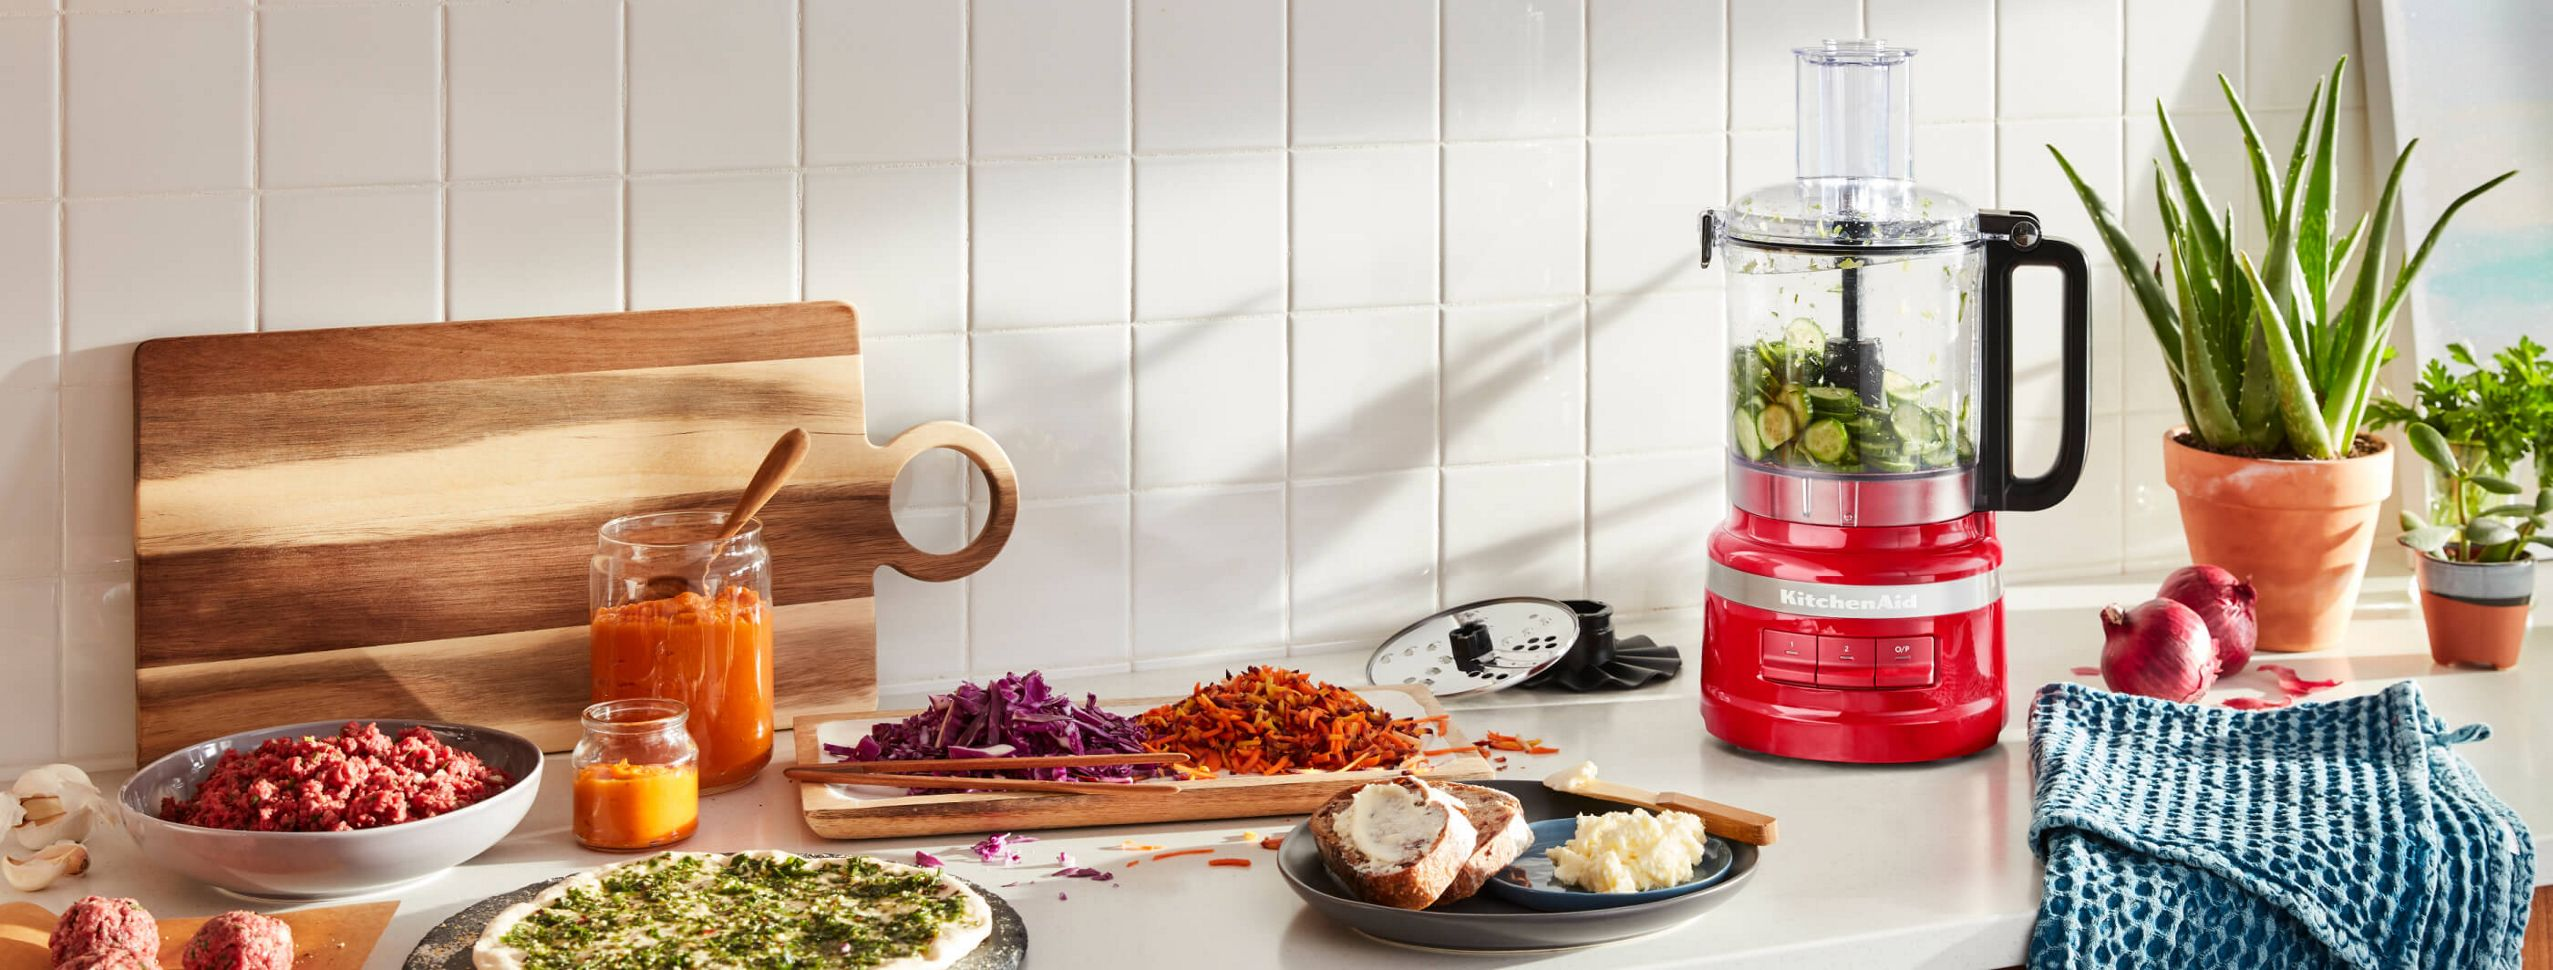 An Empire Red 9 Cup Food Processor on a kitchen counter.